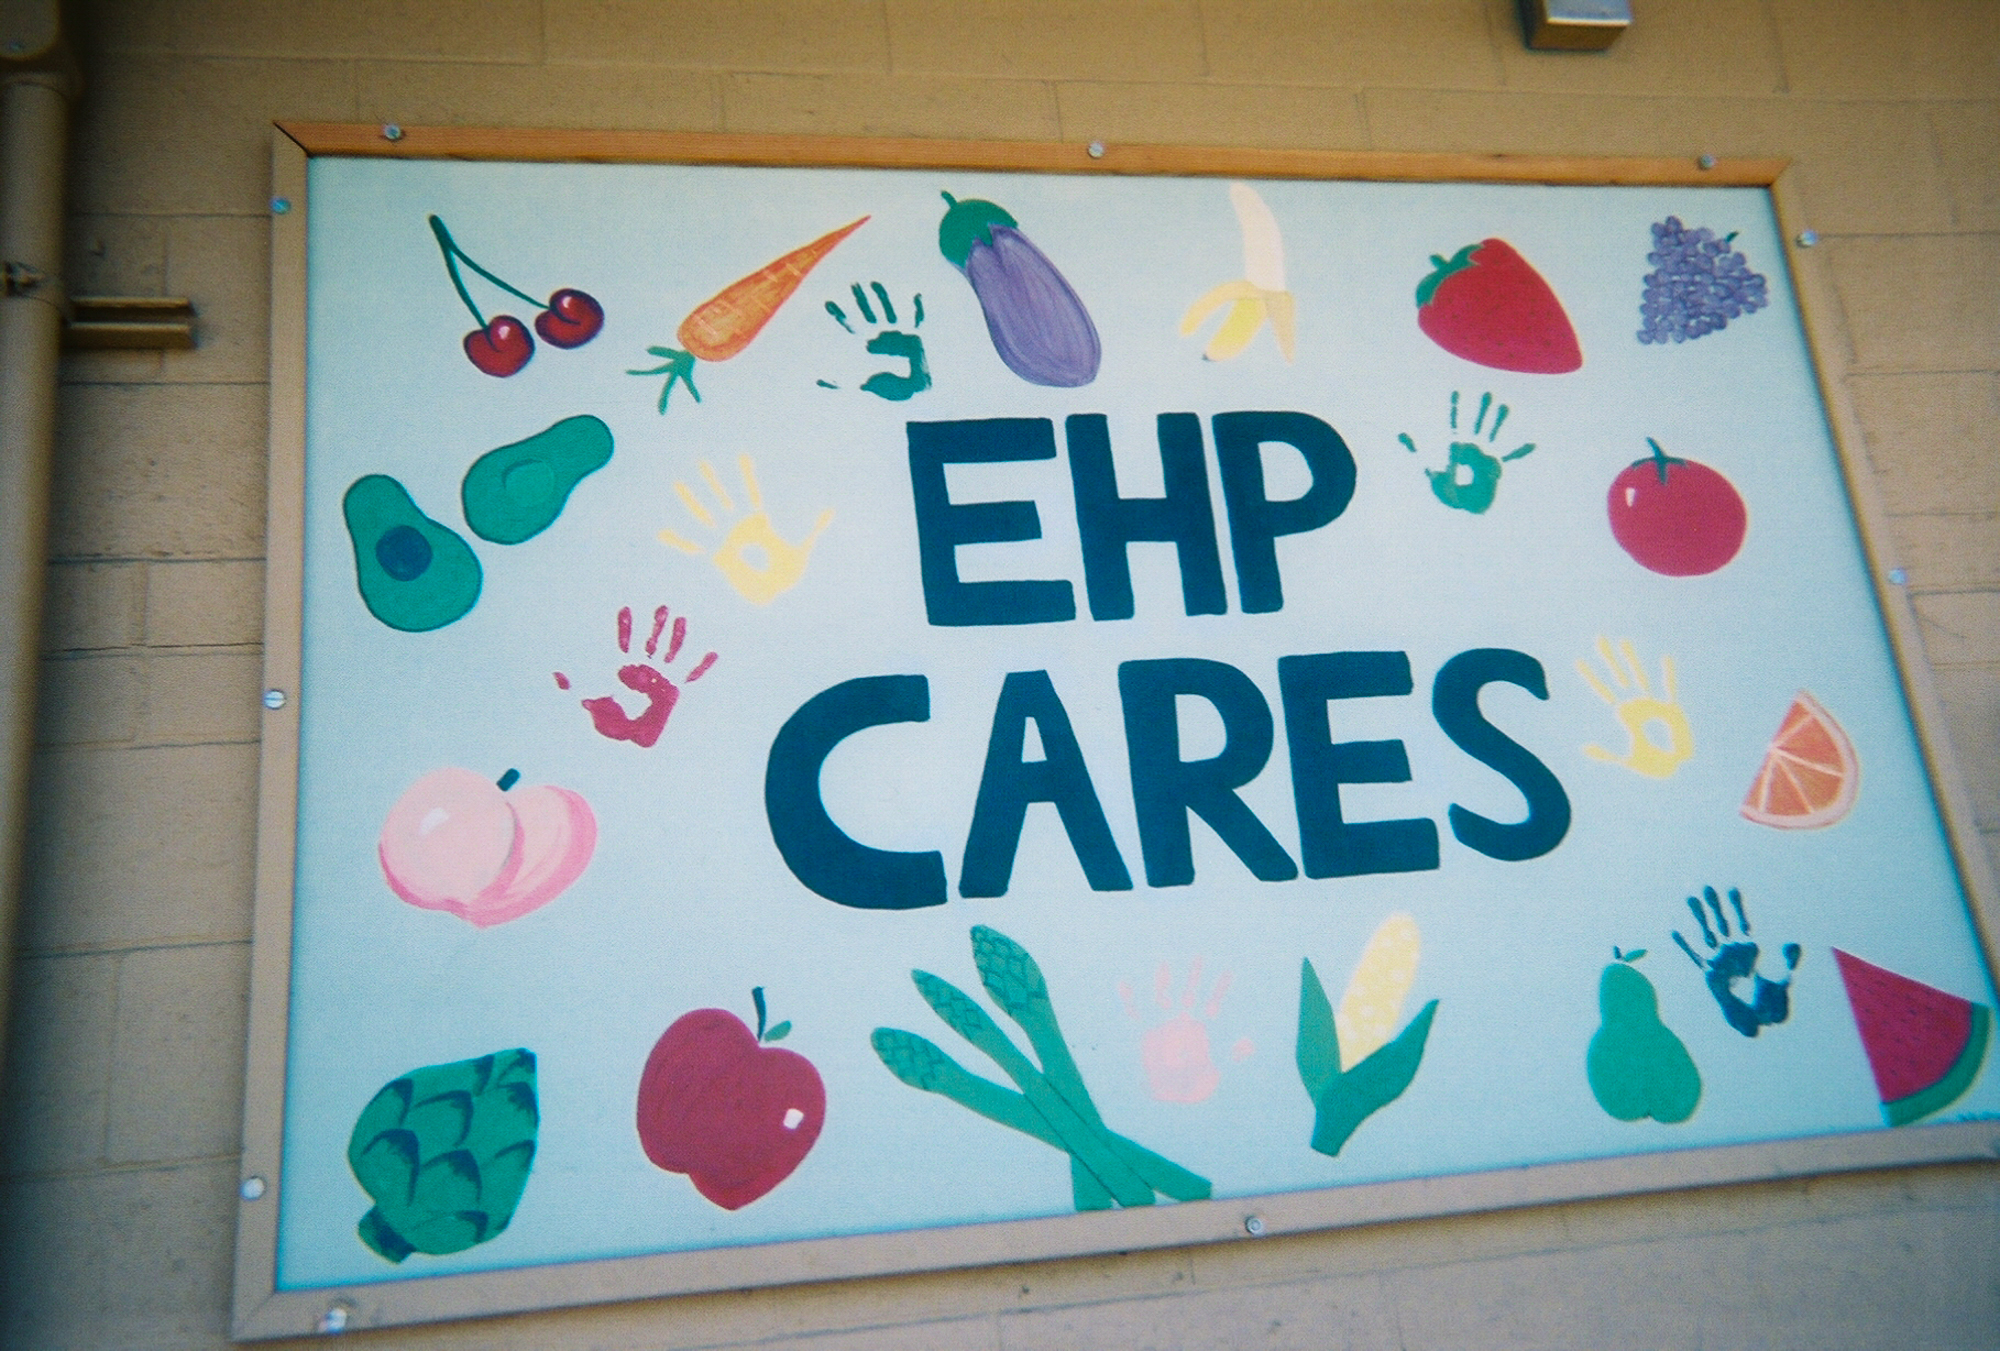 The Ecumenical Hunger Program, based in East Palo Alto, is another nonprofit that provides nutritious food support to families and individuals, including to those who do not have means of cooking or refrigerating their food. (Photo by Selijah Meacham, 11.)